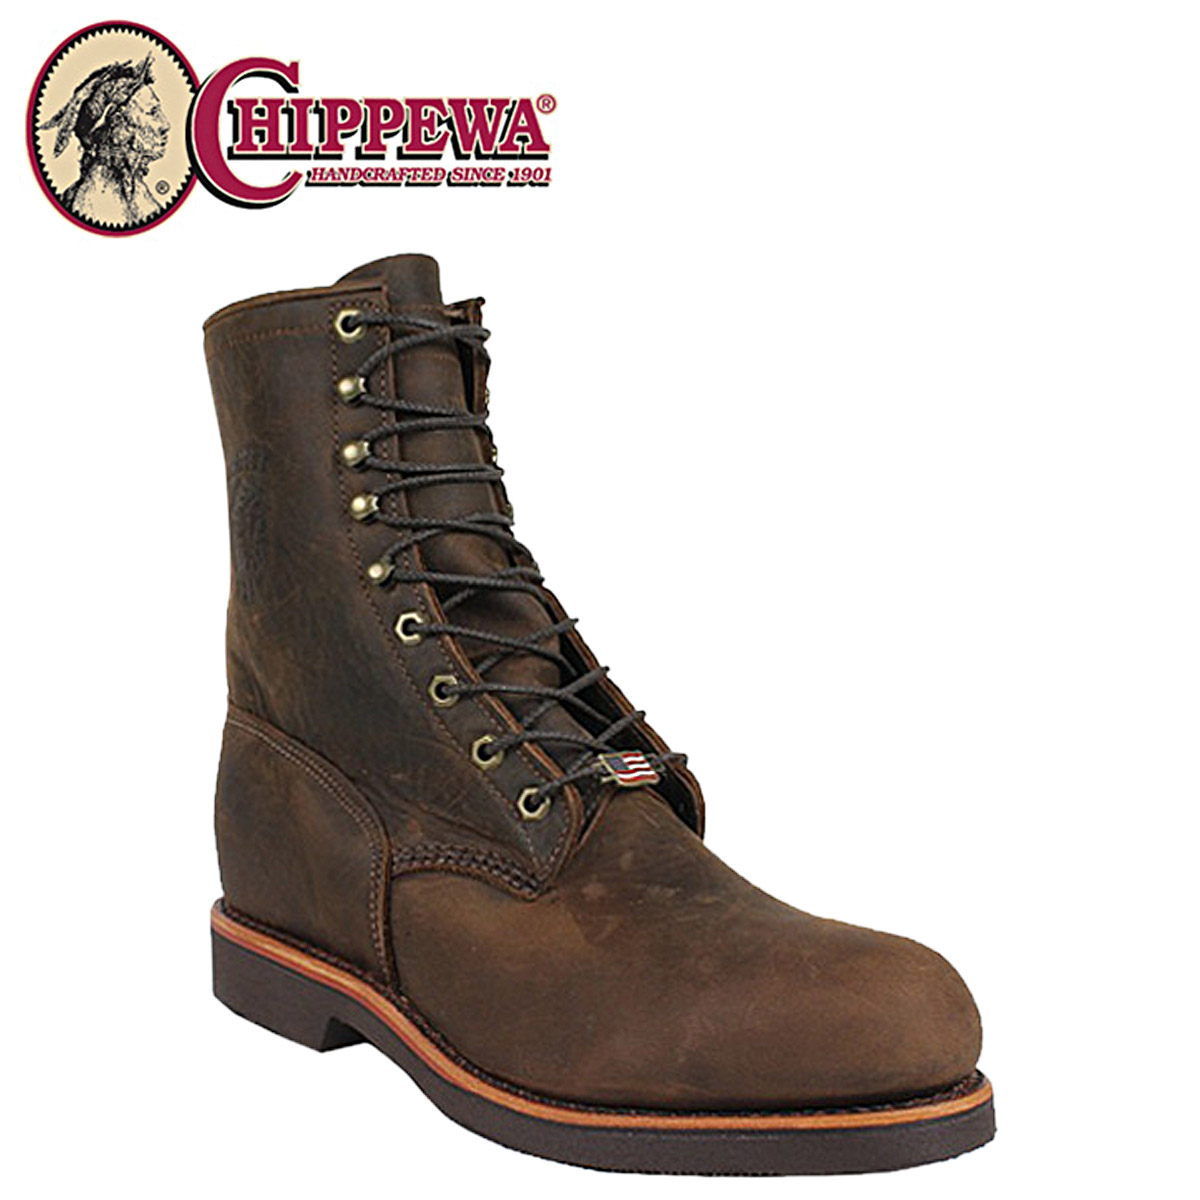 4d85250647b [SOLD OUT]-Chippewa CHIPPEWA work boots [Bay Apache, 20071 8INCH STEEL-TOE  LACE UP leather CHOCOLATE APACHE, EE wise mens 8 inch lace-up steel to boot